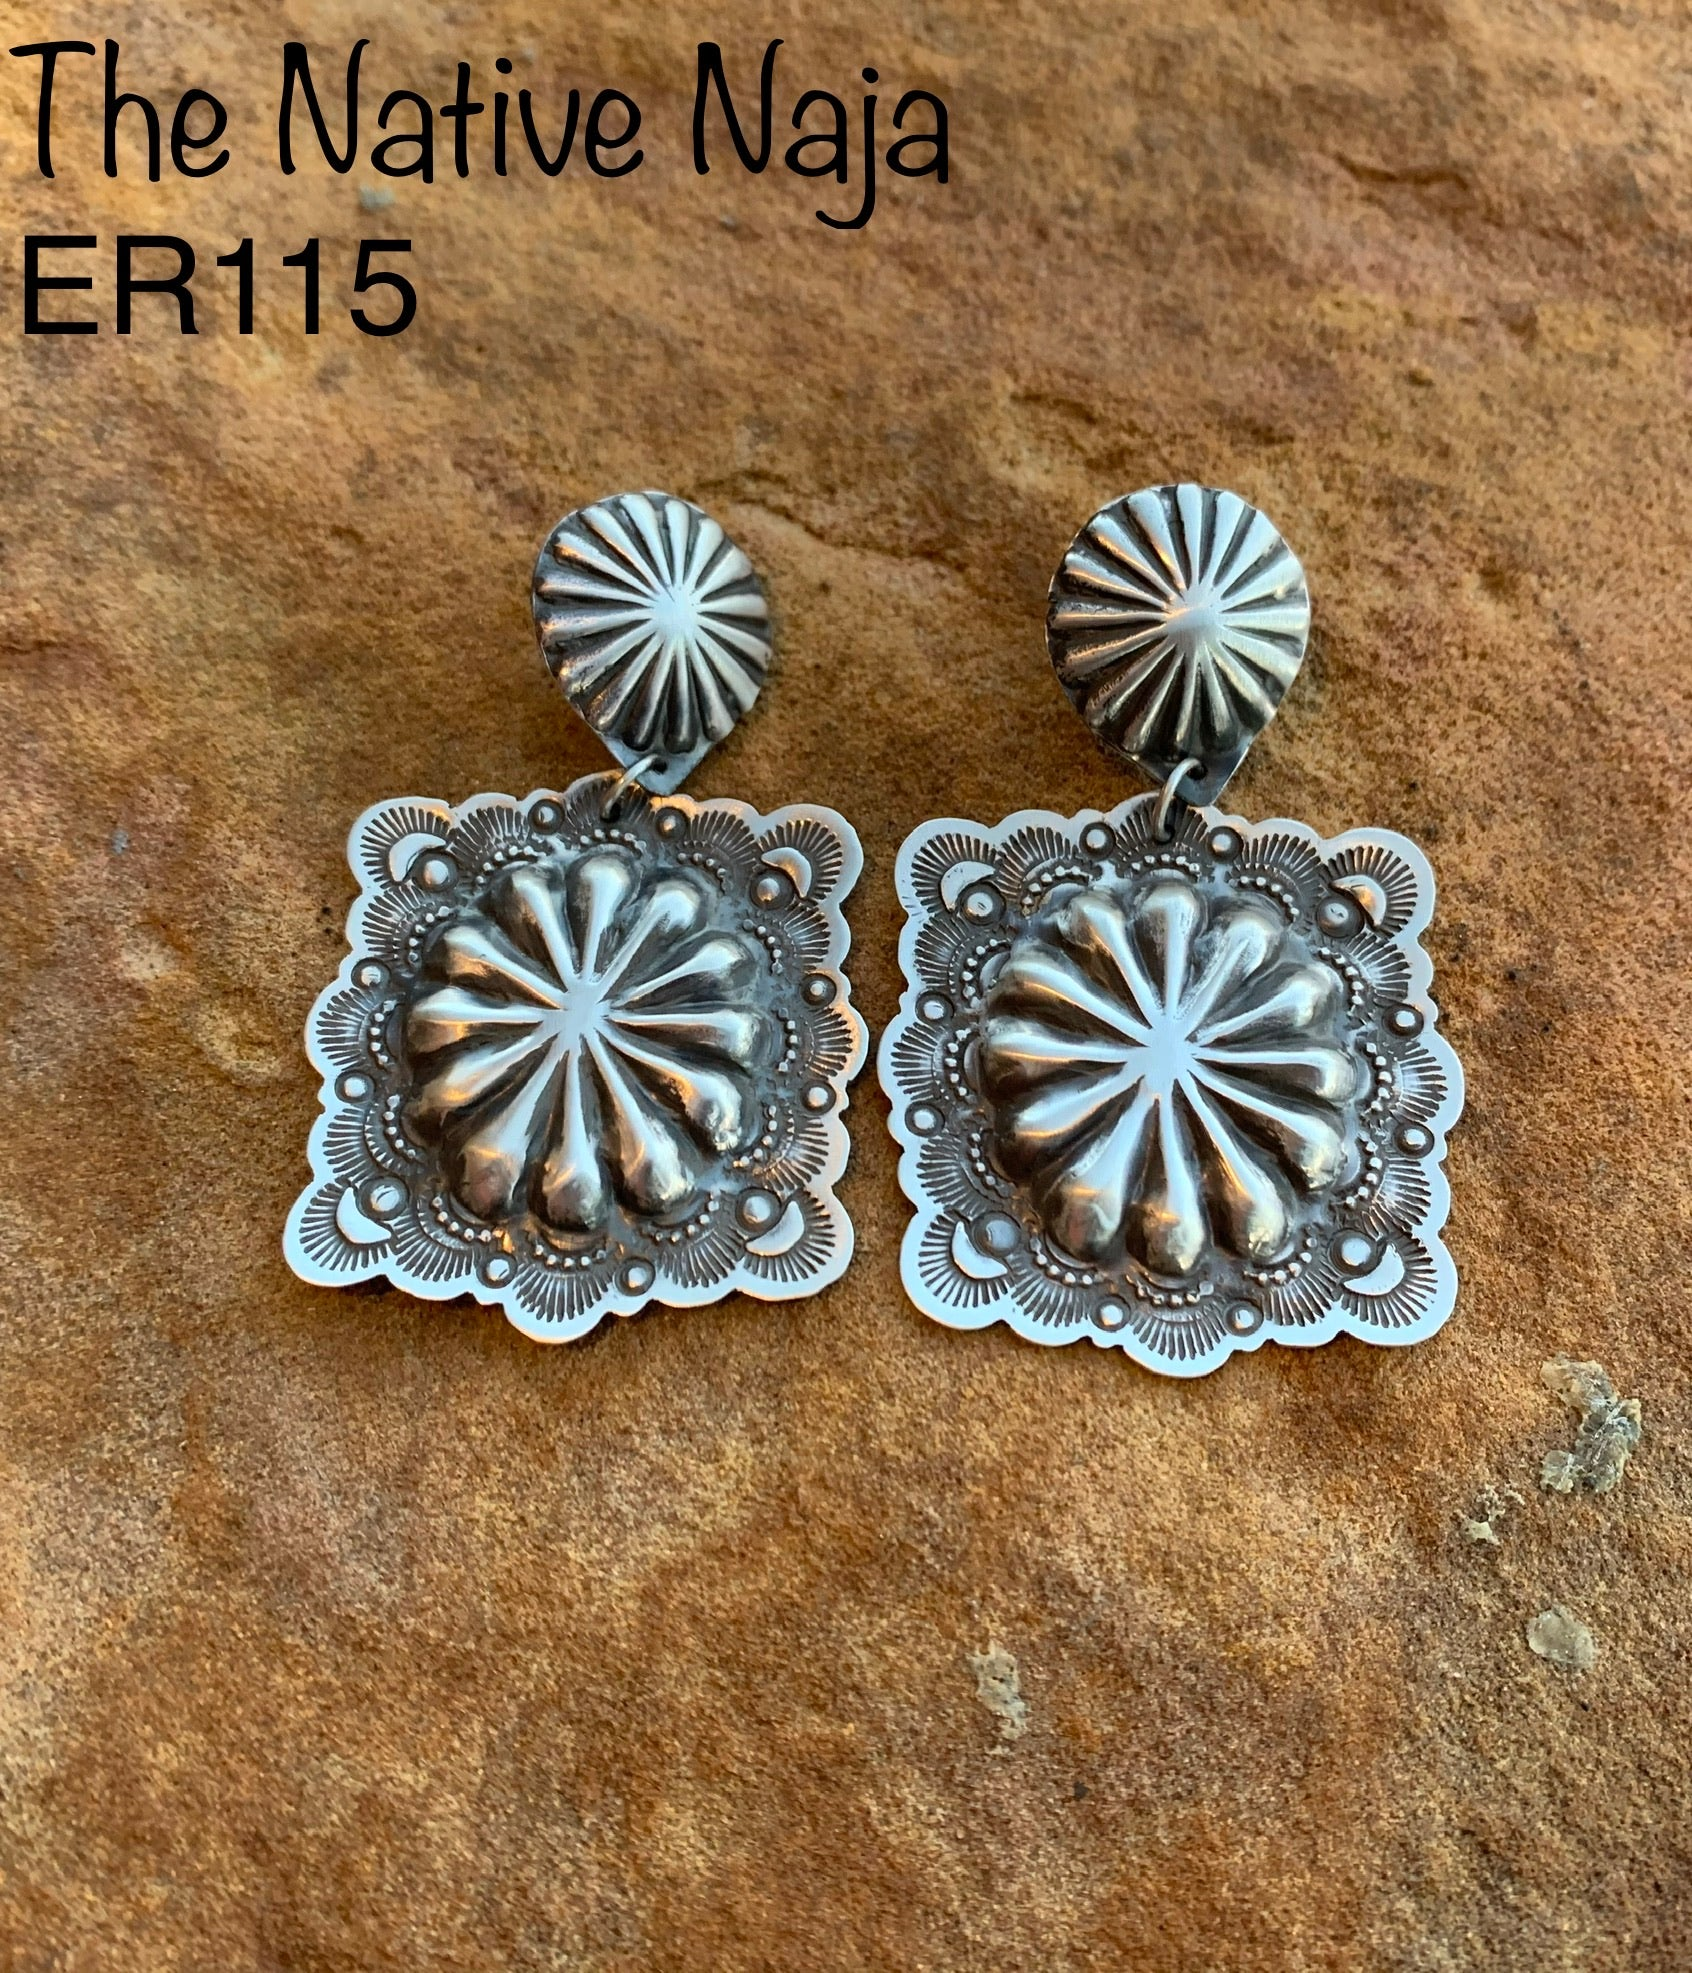 Navajo Sterling Silver Square Concho Earrings ER115